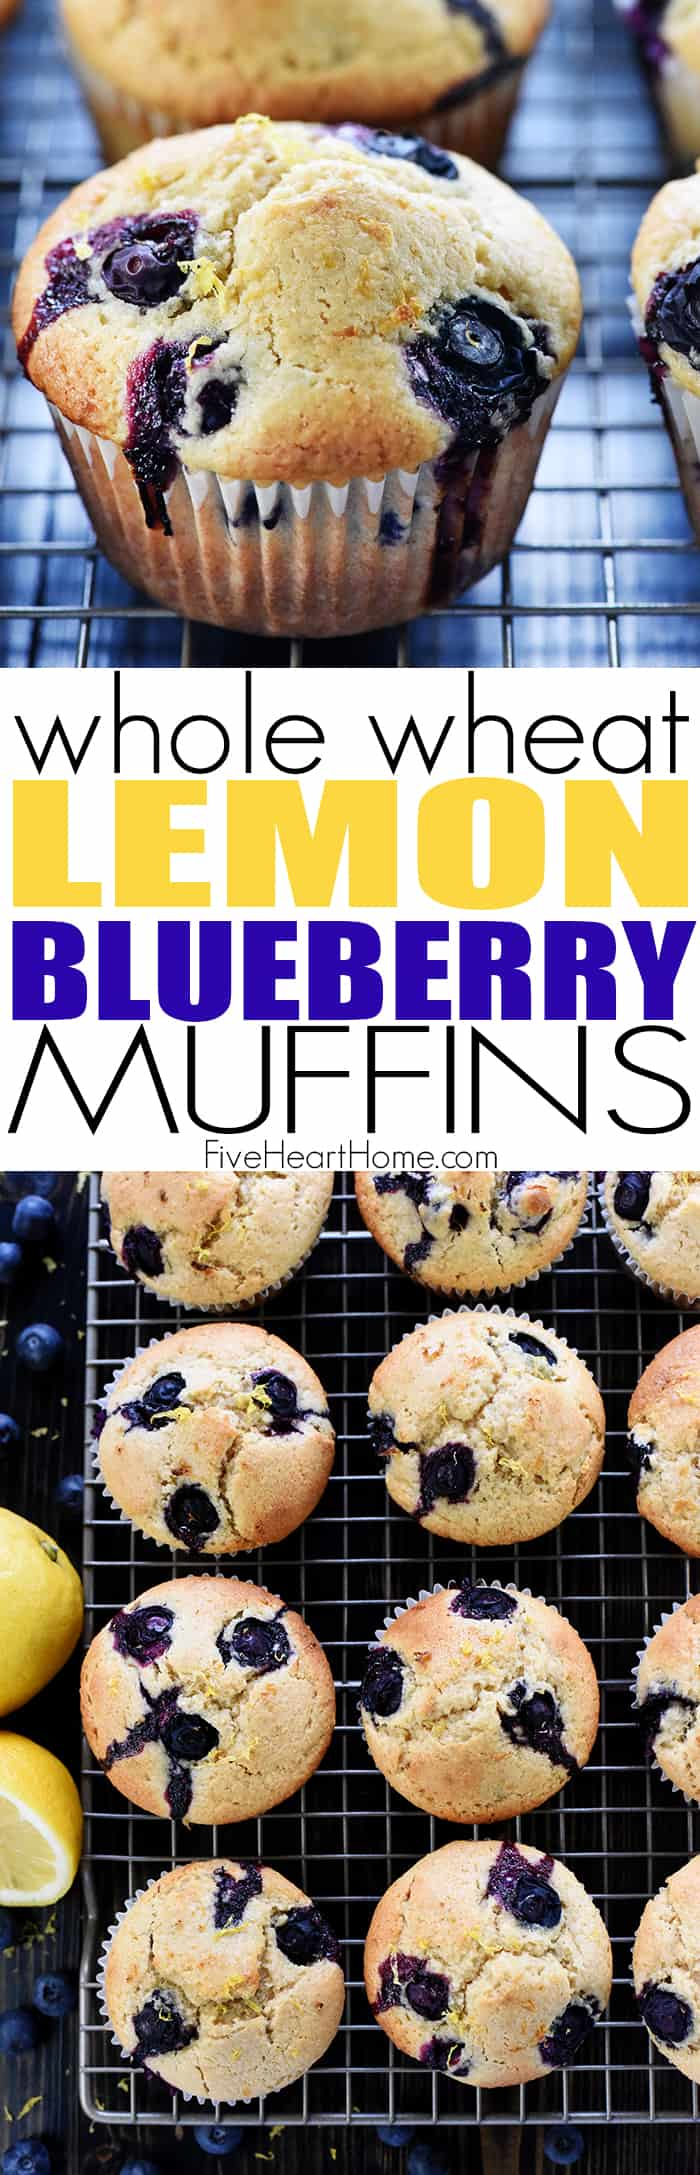 Whole Wheat Lemon Blueberry Muffins ~ light, tender, and bursting with fresh lemon and juicy blueberries for a wholesome breakfast or snack! | FiveHeartHome.com